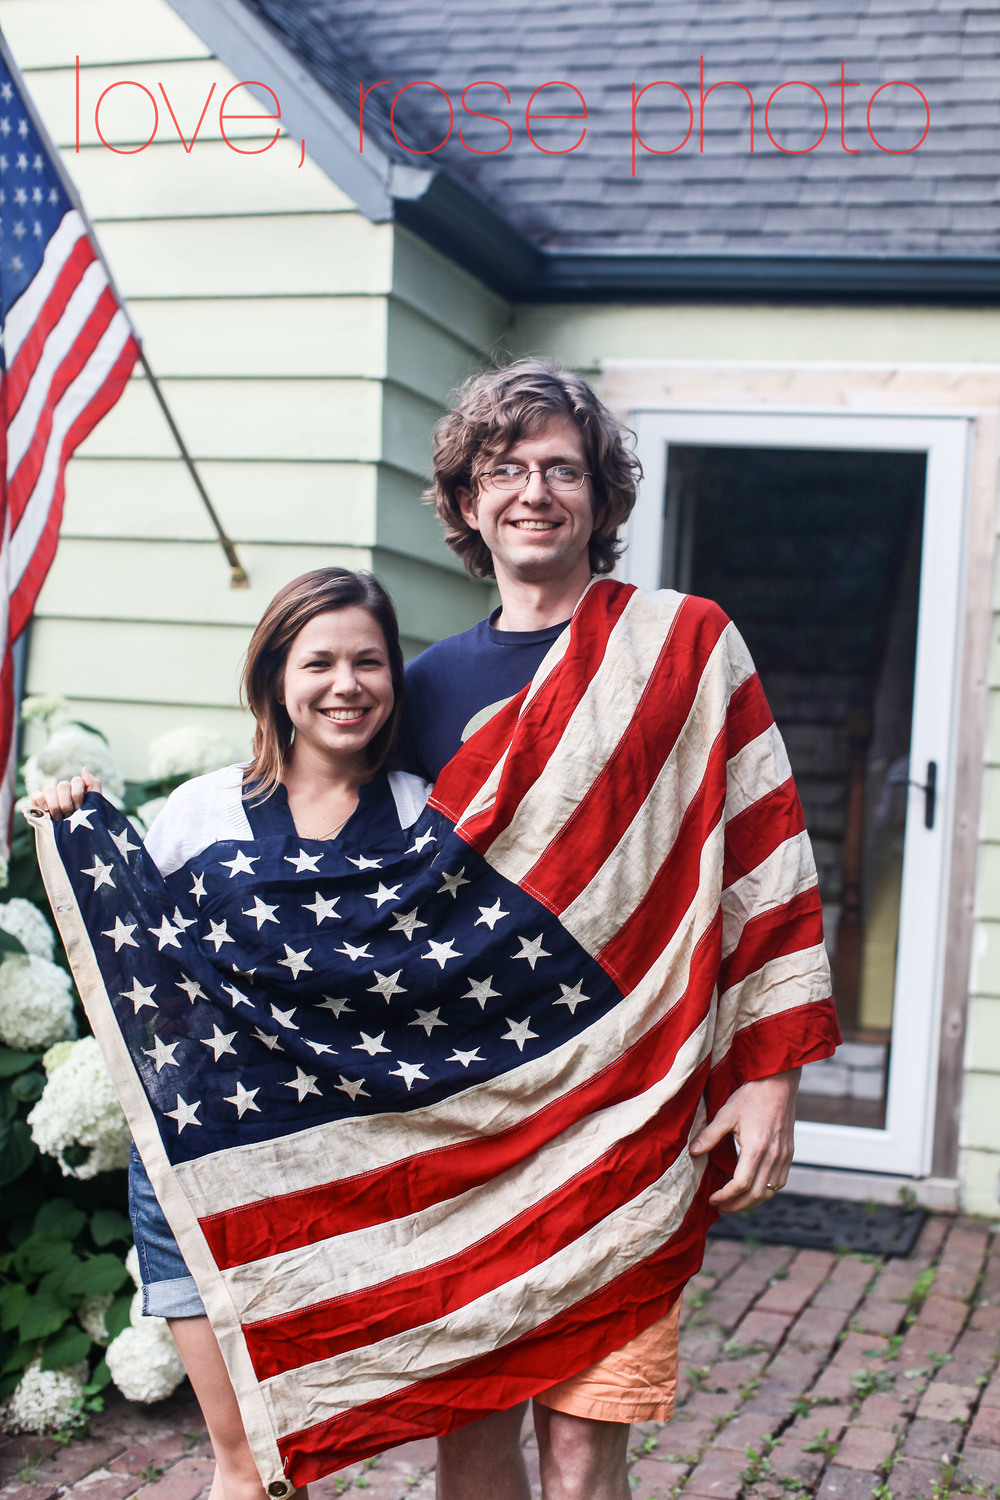 4th of july chicago america downers grove melting pot something for everyone equality-10.jpg